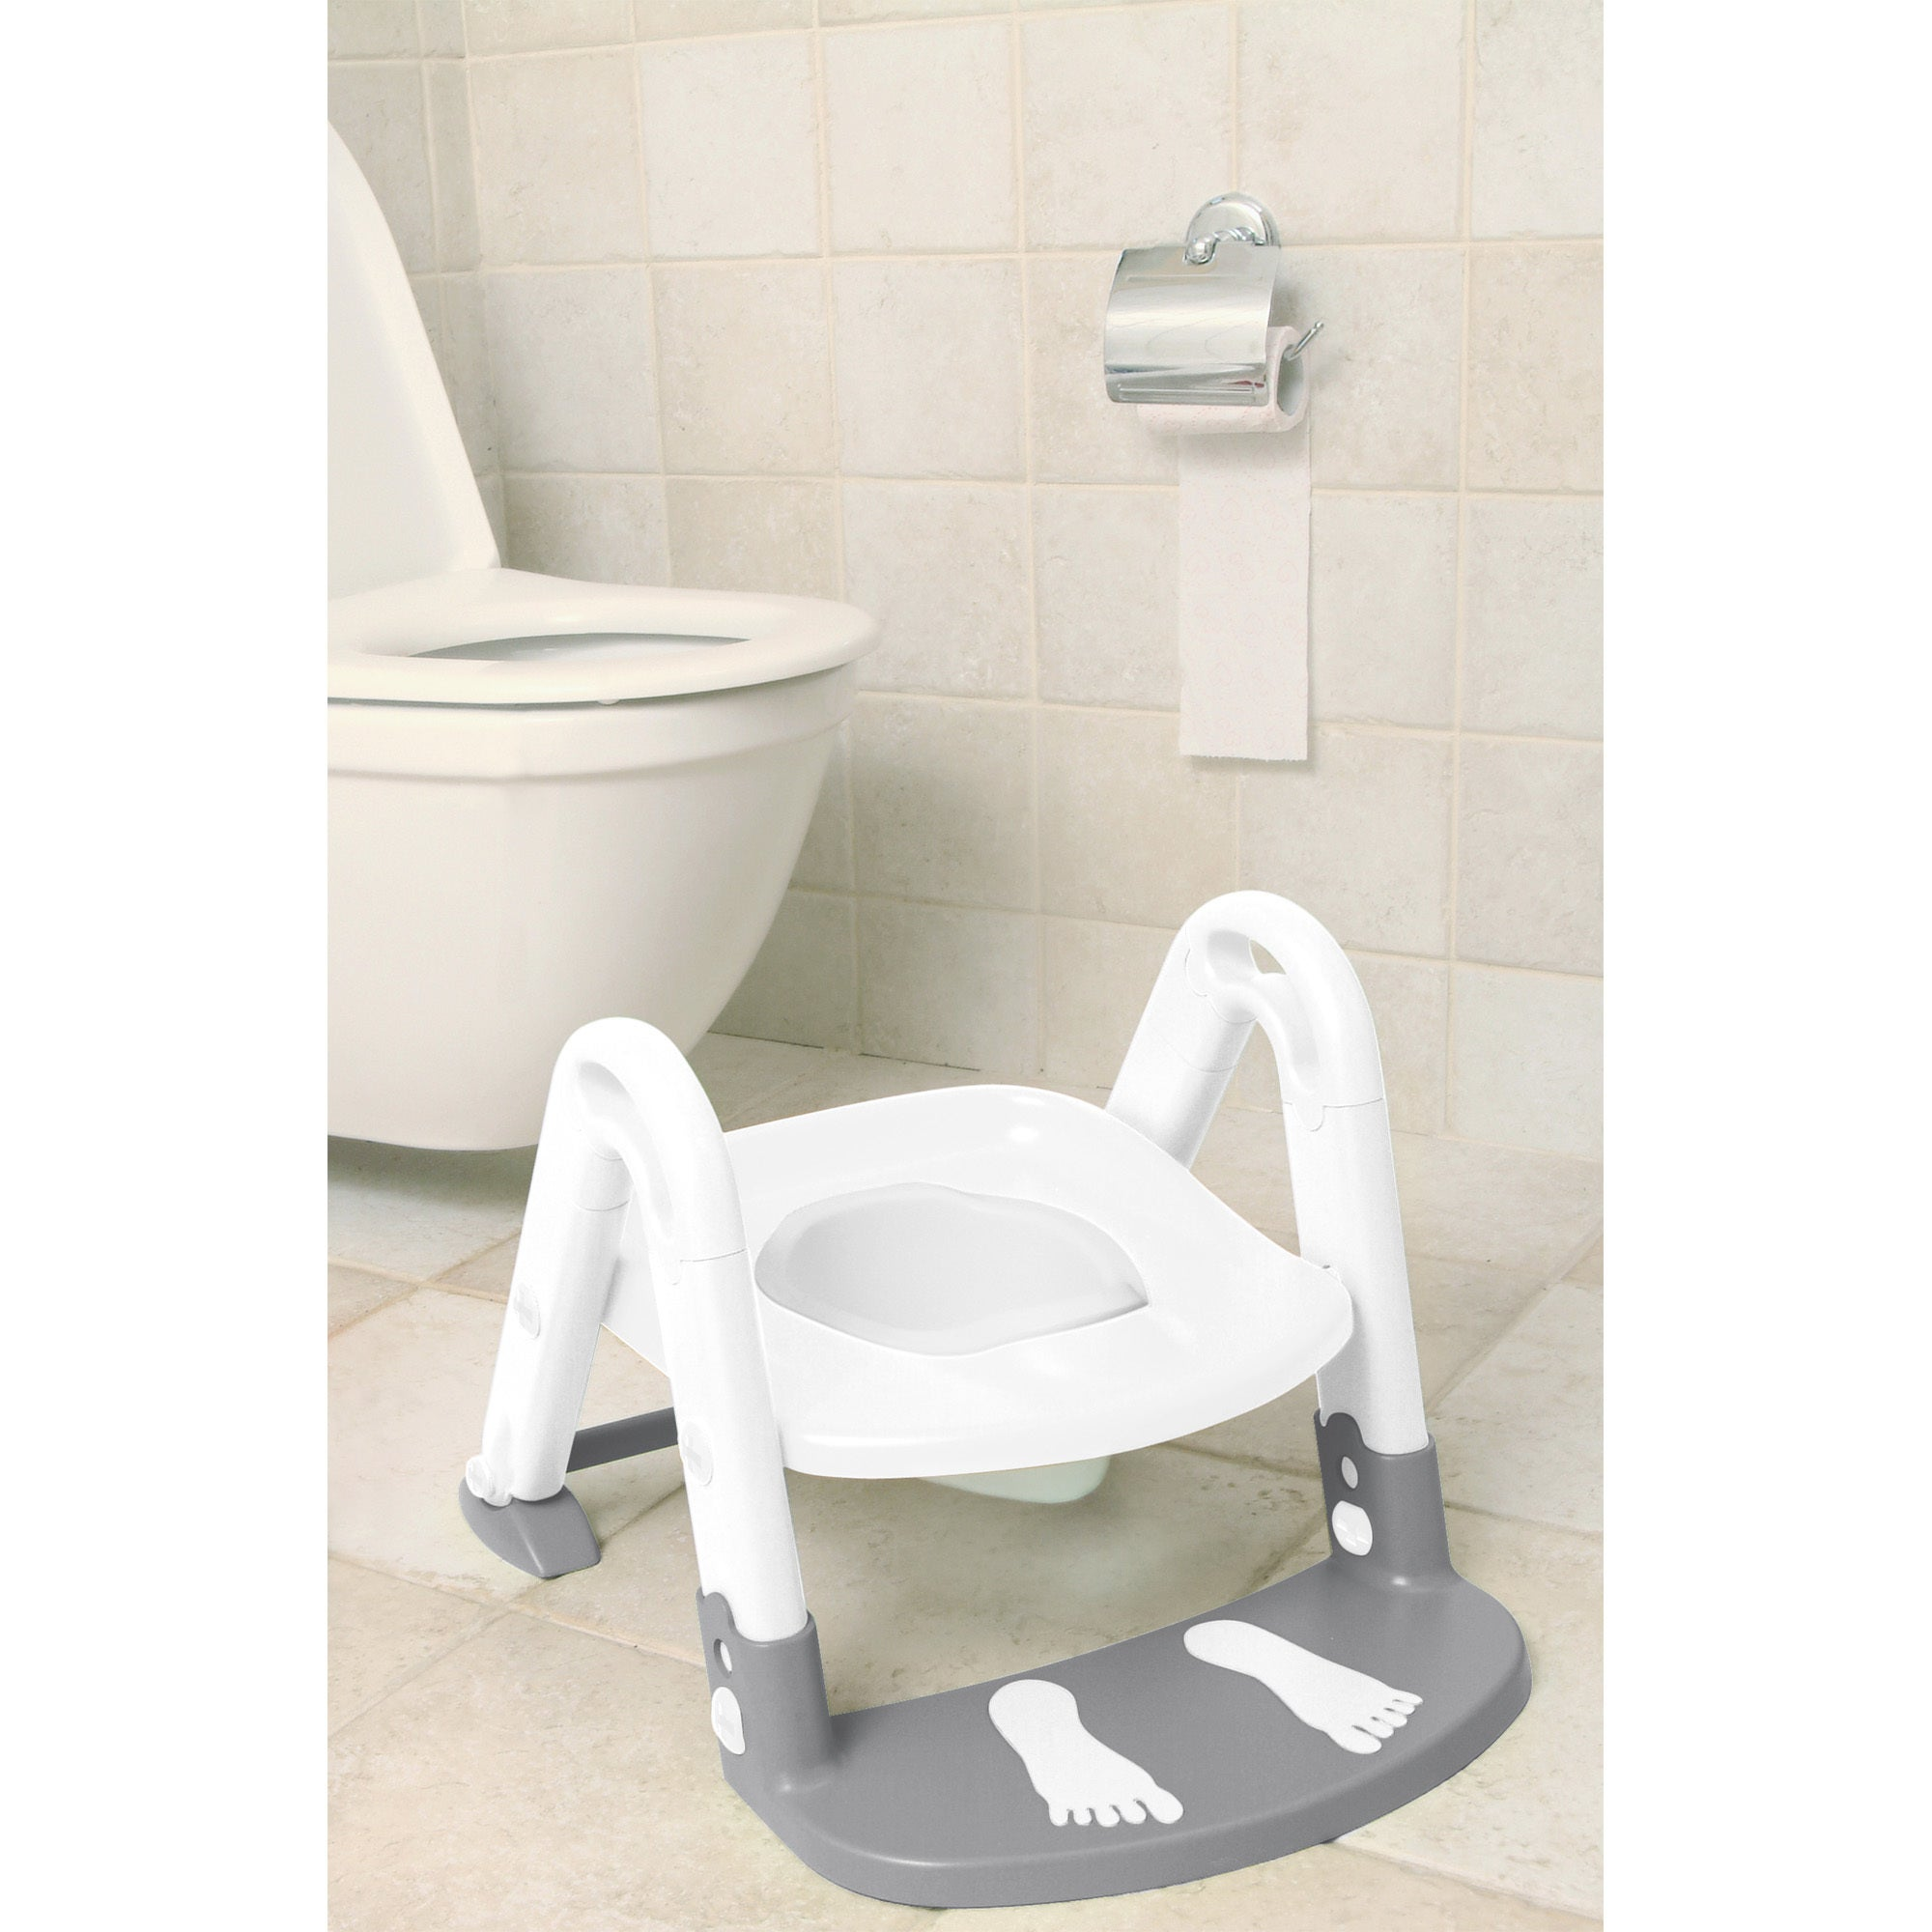 Dreambaby® 3-in-1 Toilet Trainer - White - Free Shipping On Orders ...